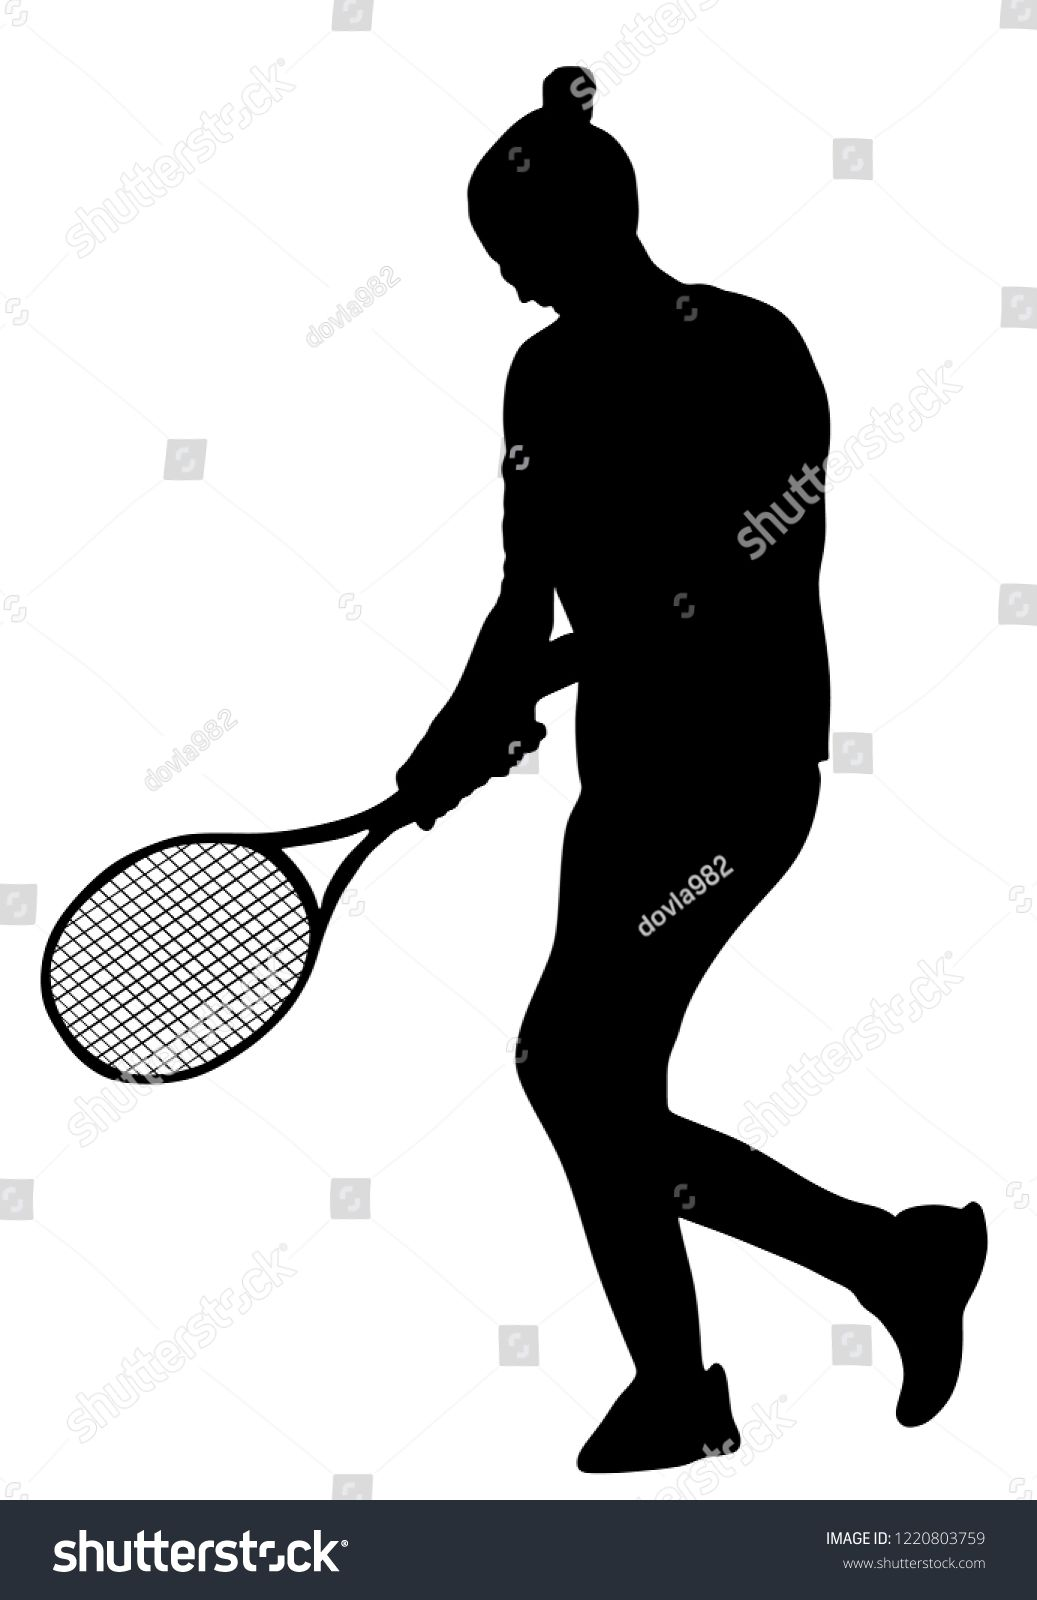 Woman Tennis Player Vector Silhouette Isolated On White Background Sport Tennis Shadow Isolated Recreation Pose Girl Pla Play Tennis Sport Tennis Girls Play